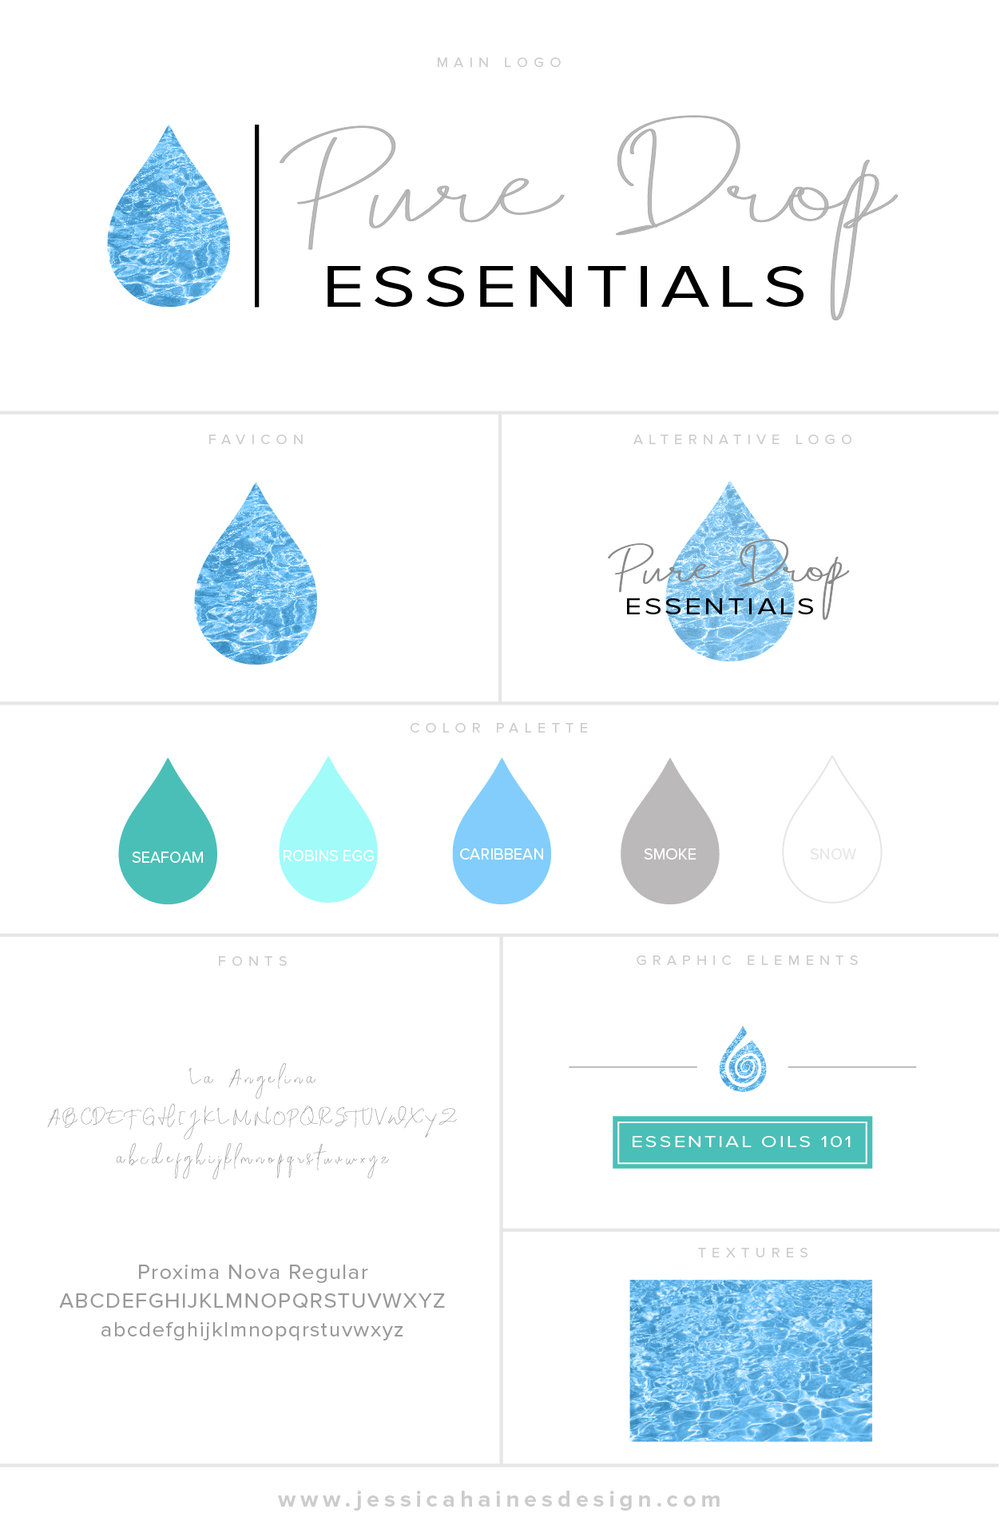 Pure Drop Essentials Branding Style Board with logo, alternate logo, favicon, color palette, fonts, graphic elements and textures. Created by Jessica Haines Design